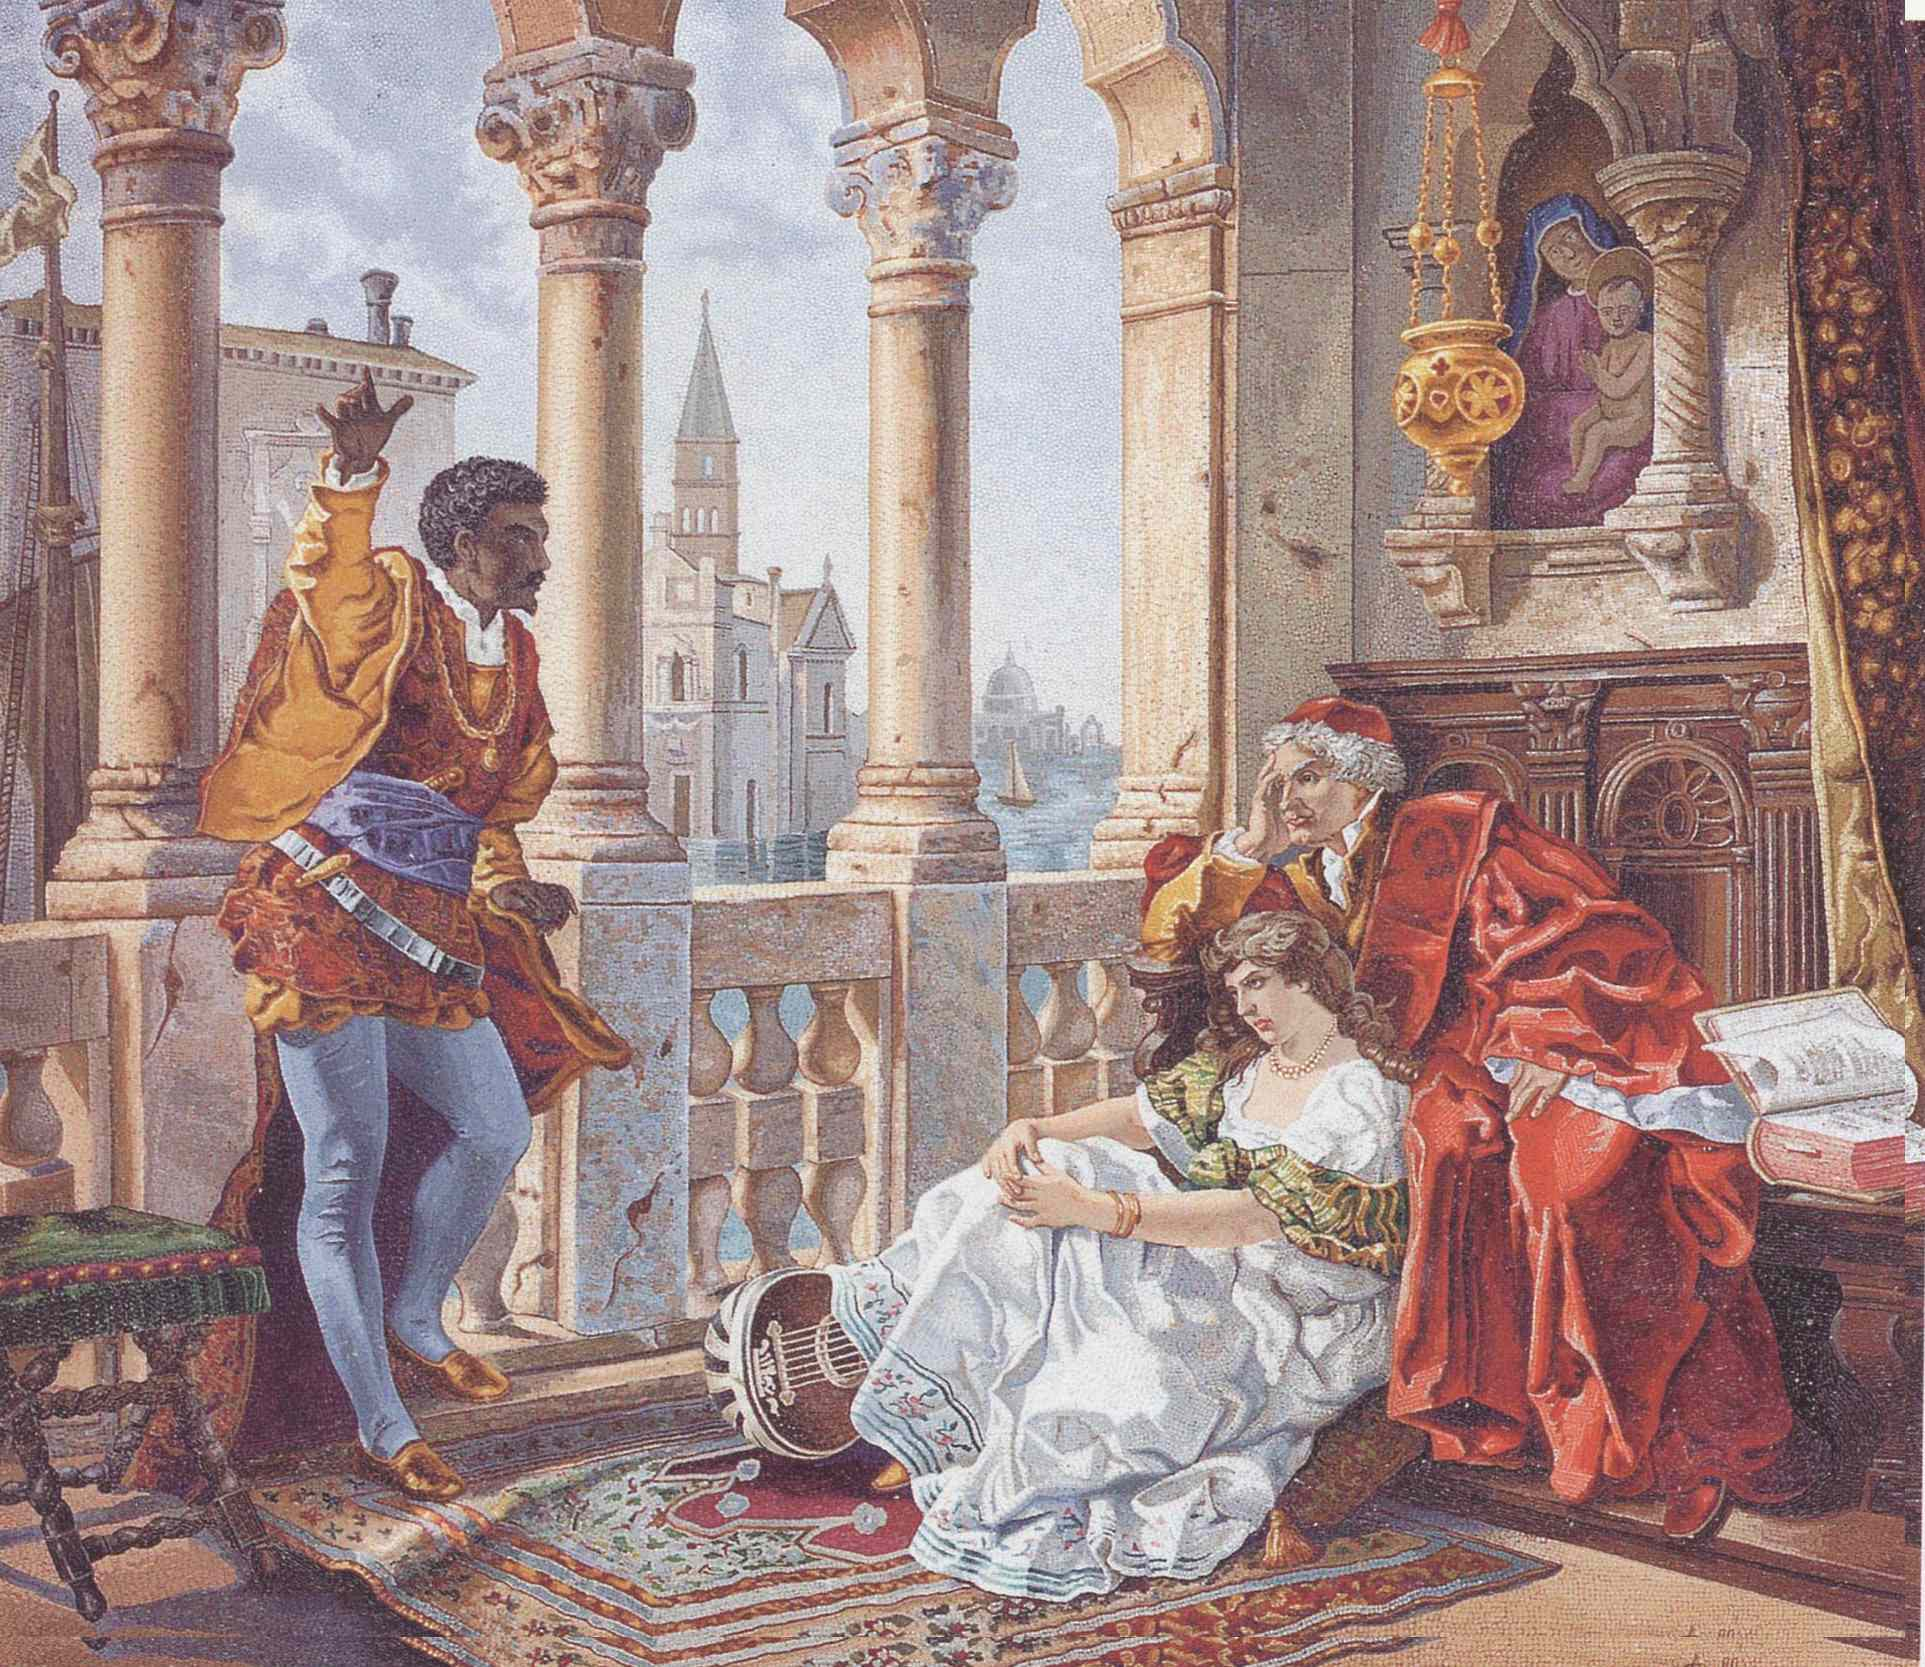 othello and the moor of venice essay Discuss the role that race plays in shakespeare's portrayal of othello how do the  other characters react to othello's skin color or to the fact that he is a moor   provokes the most poisonous responses: othello is a black man in white venice.